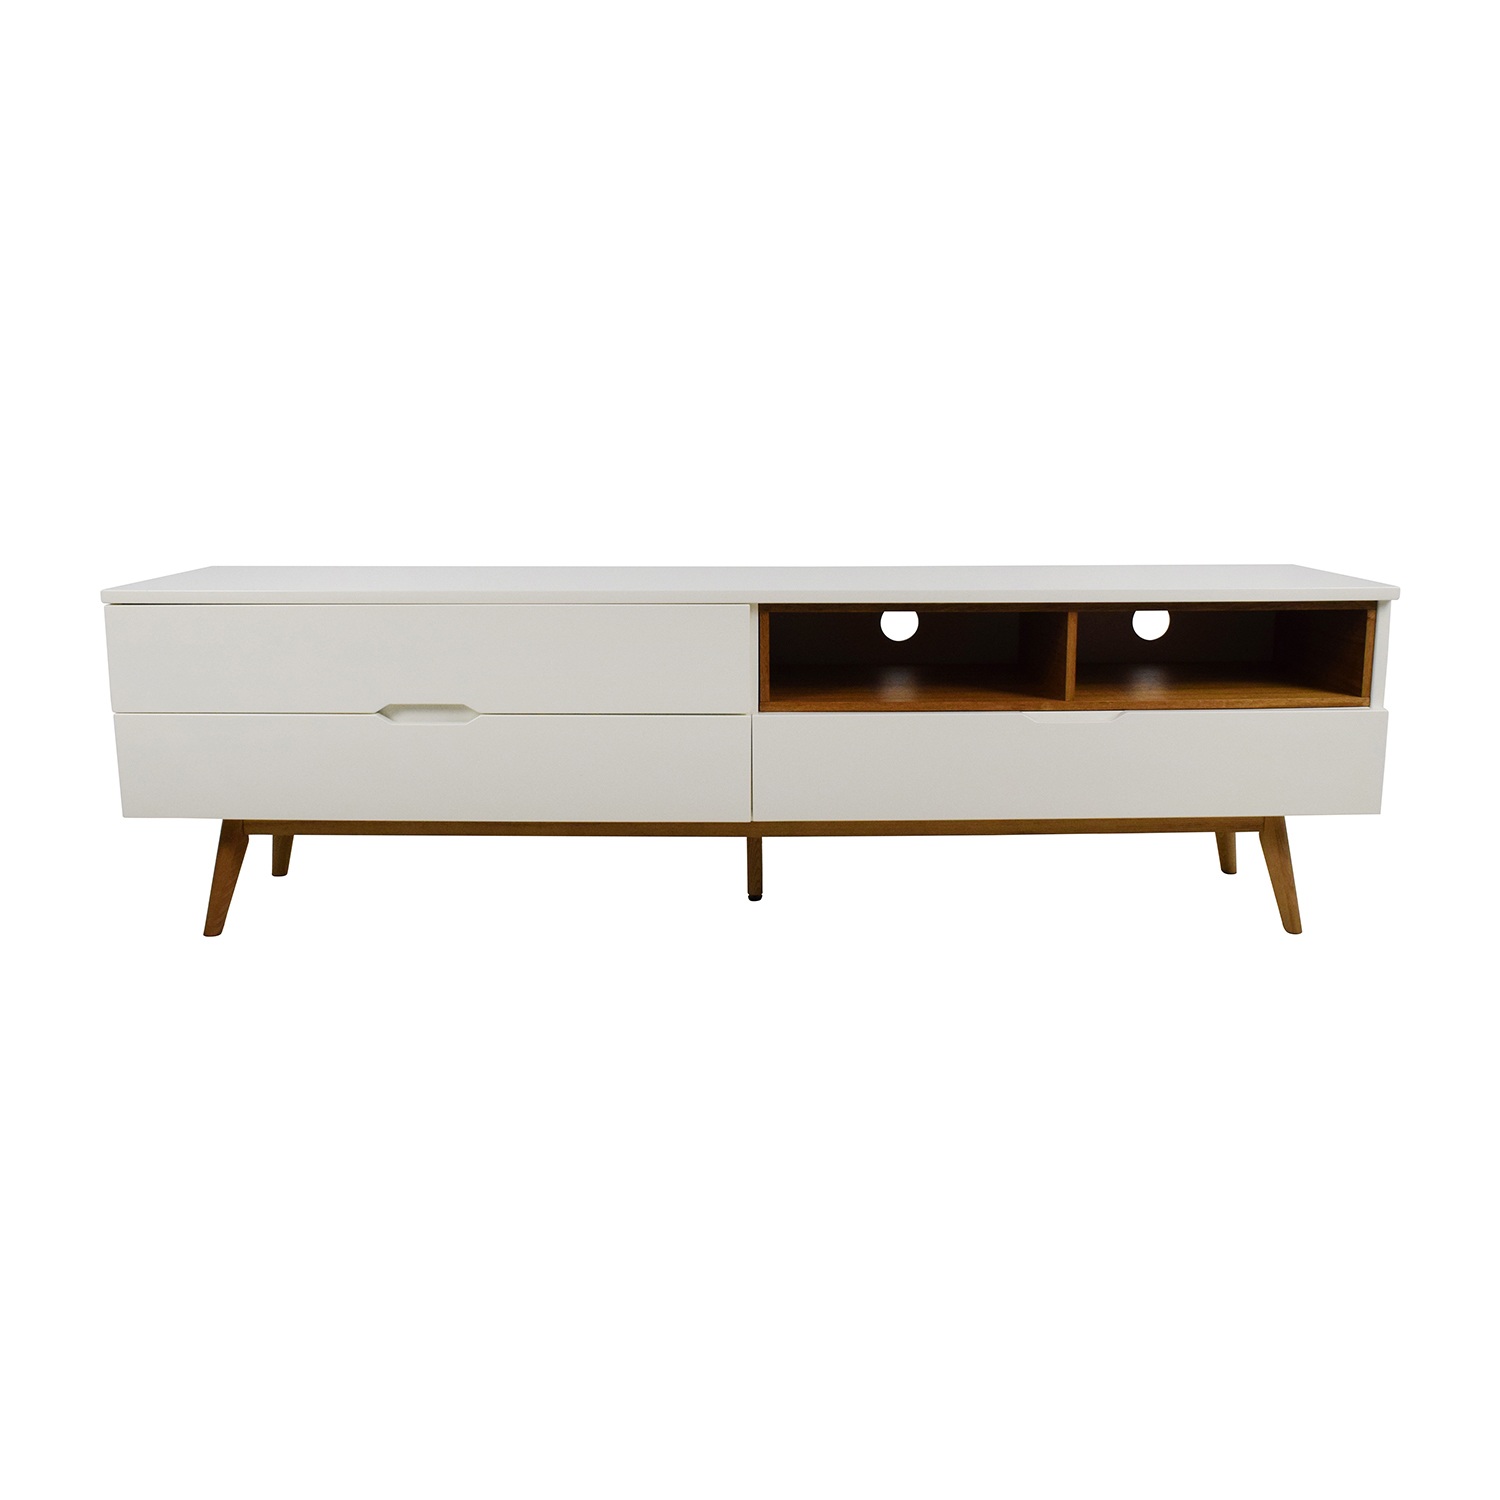 Rove Concepts Rove Concepts Andrej TV Stand for sale